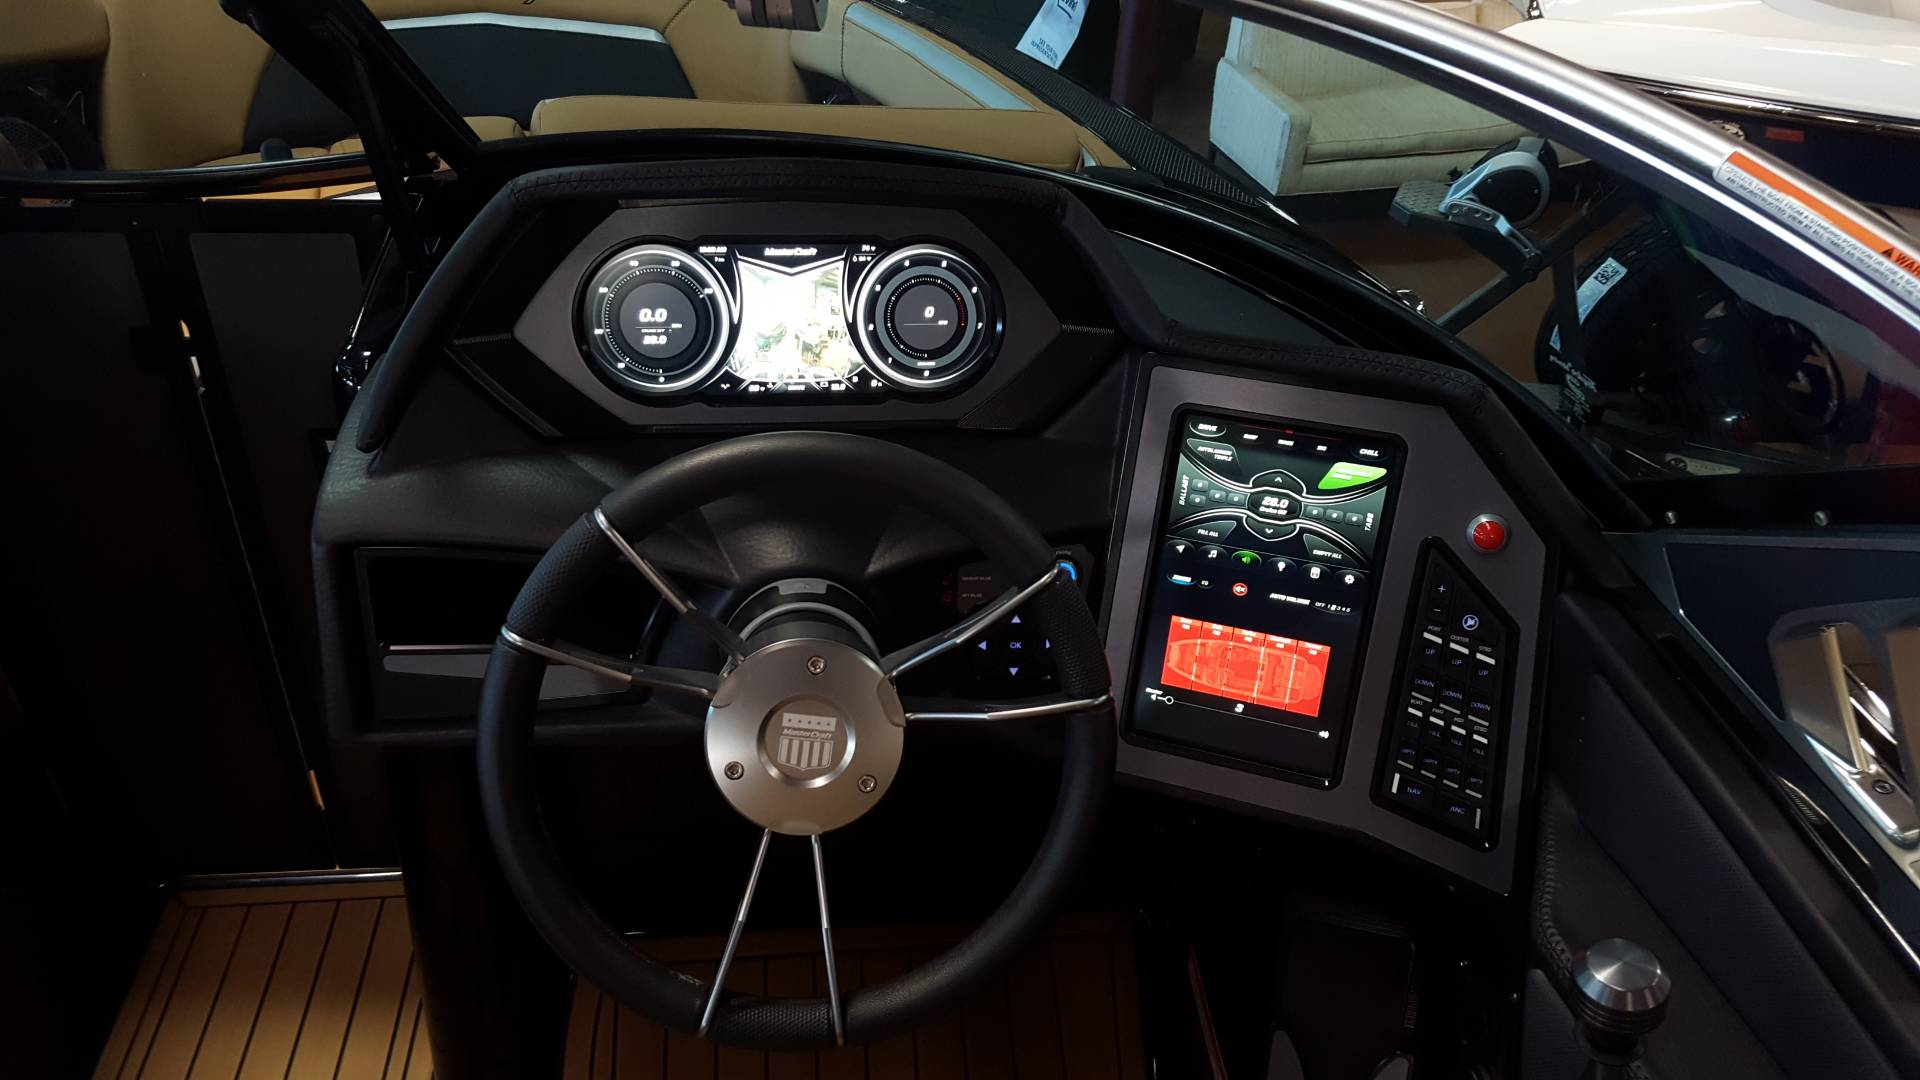 2020 Mastercraft XStar in Madera, California - Photo 17